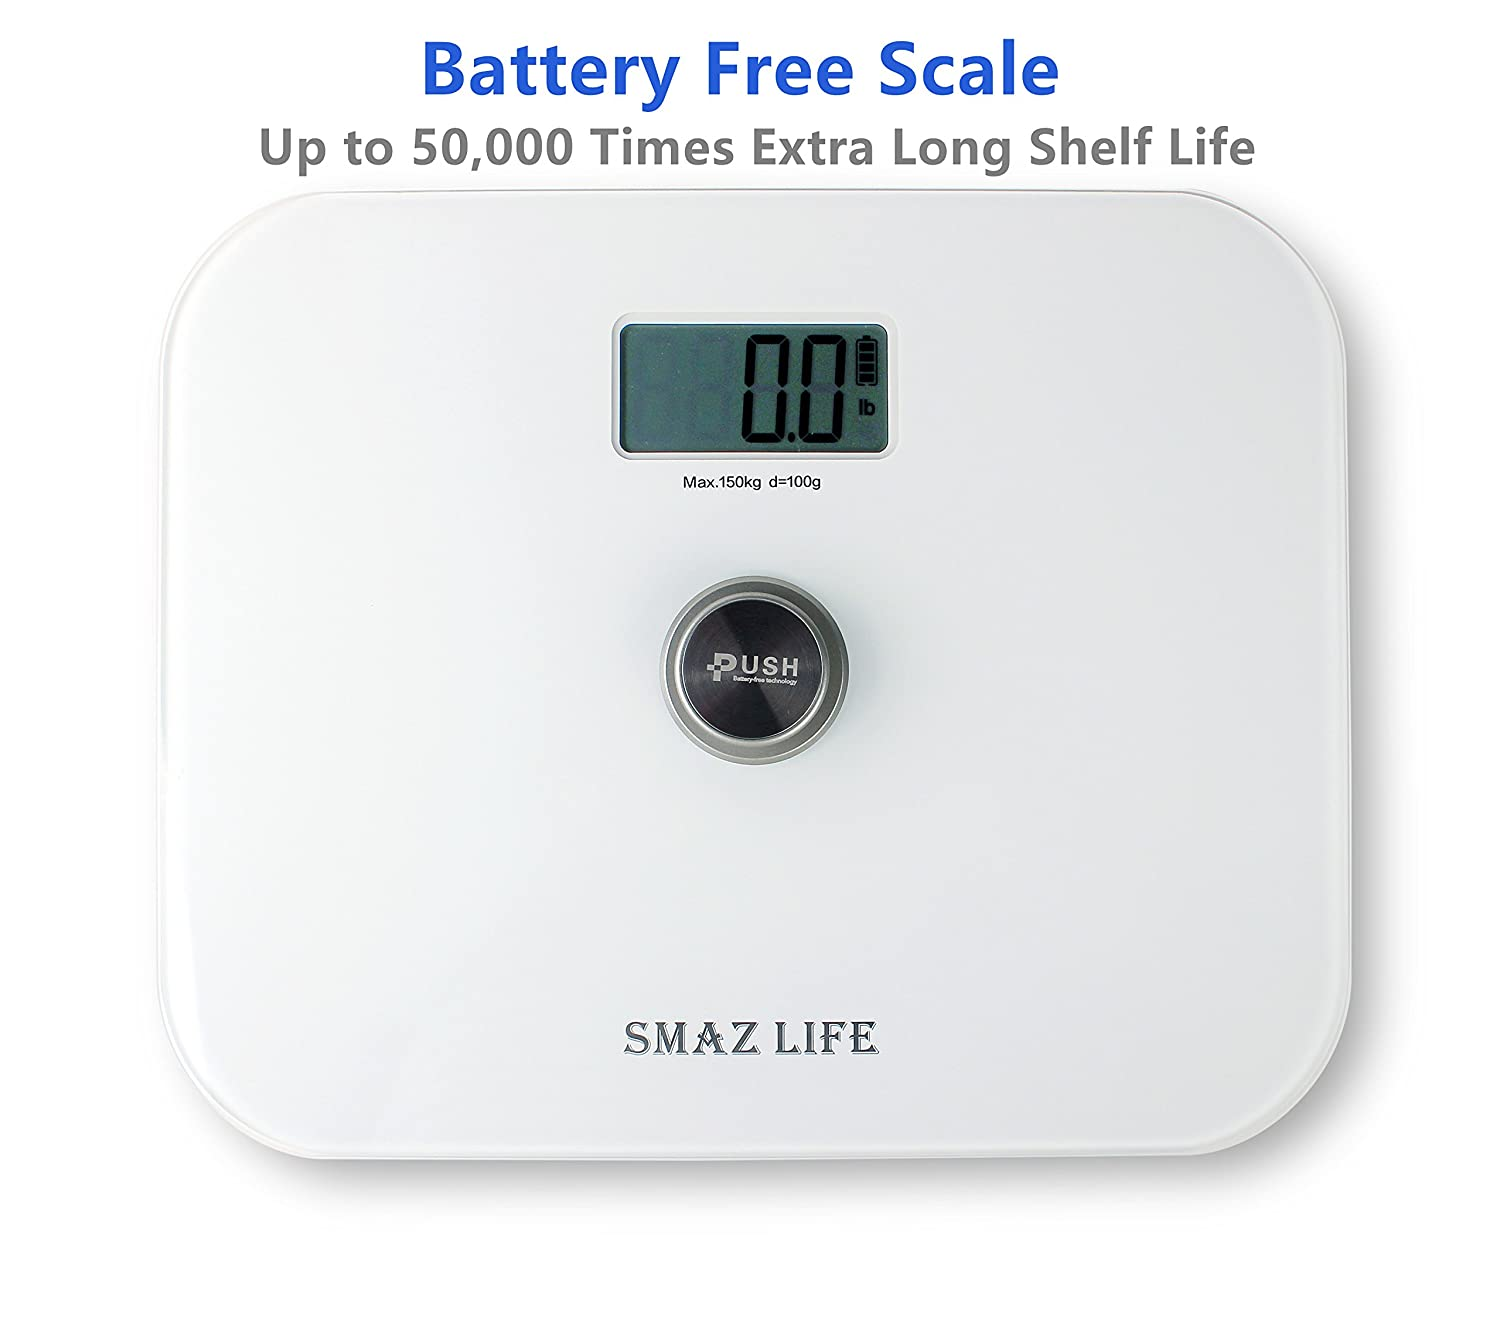 Bathroom Scale Without Batteries